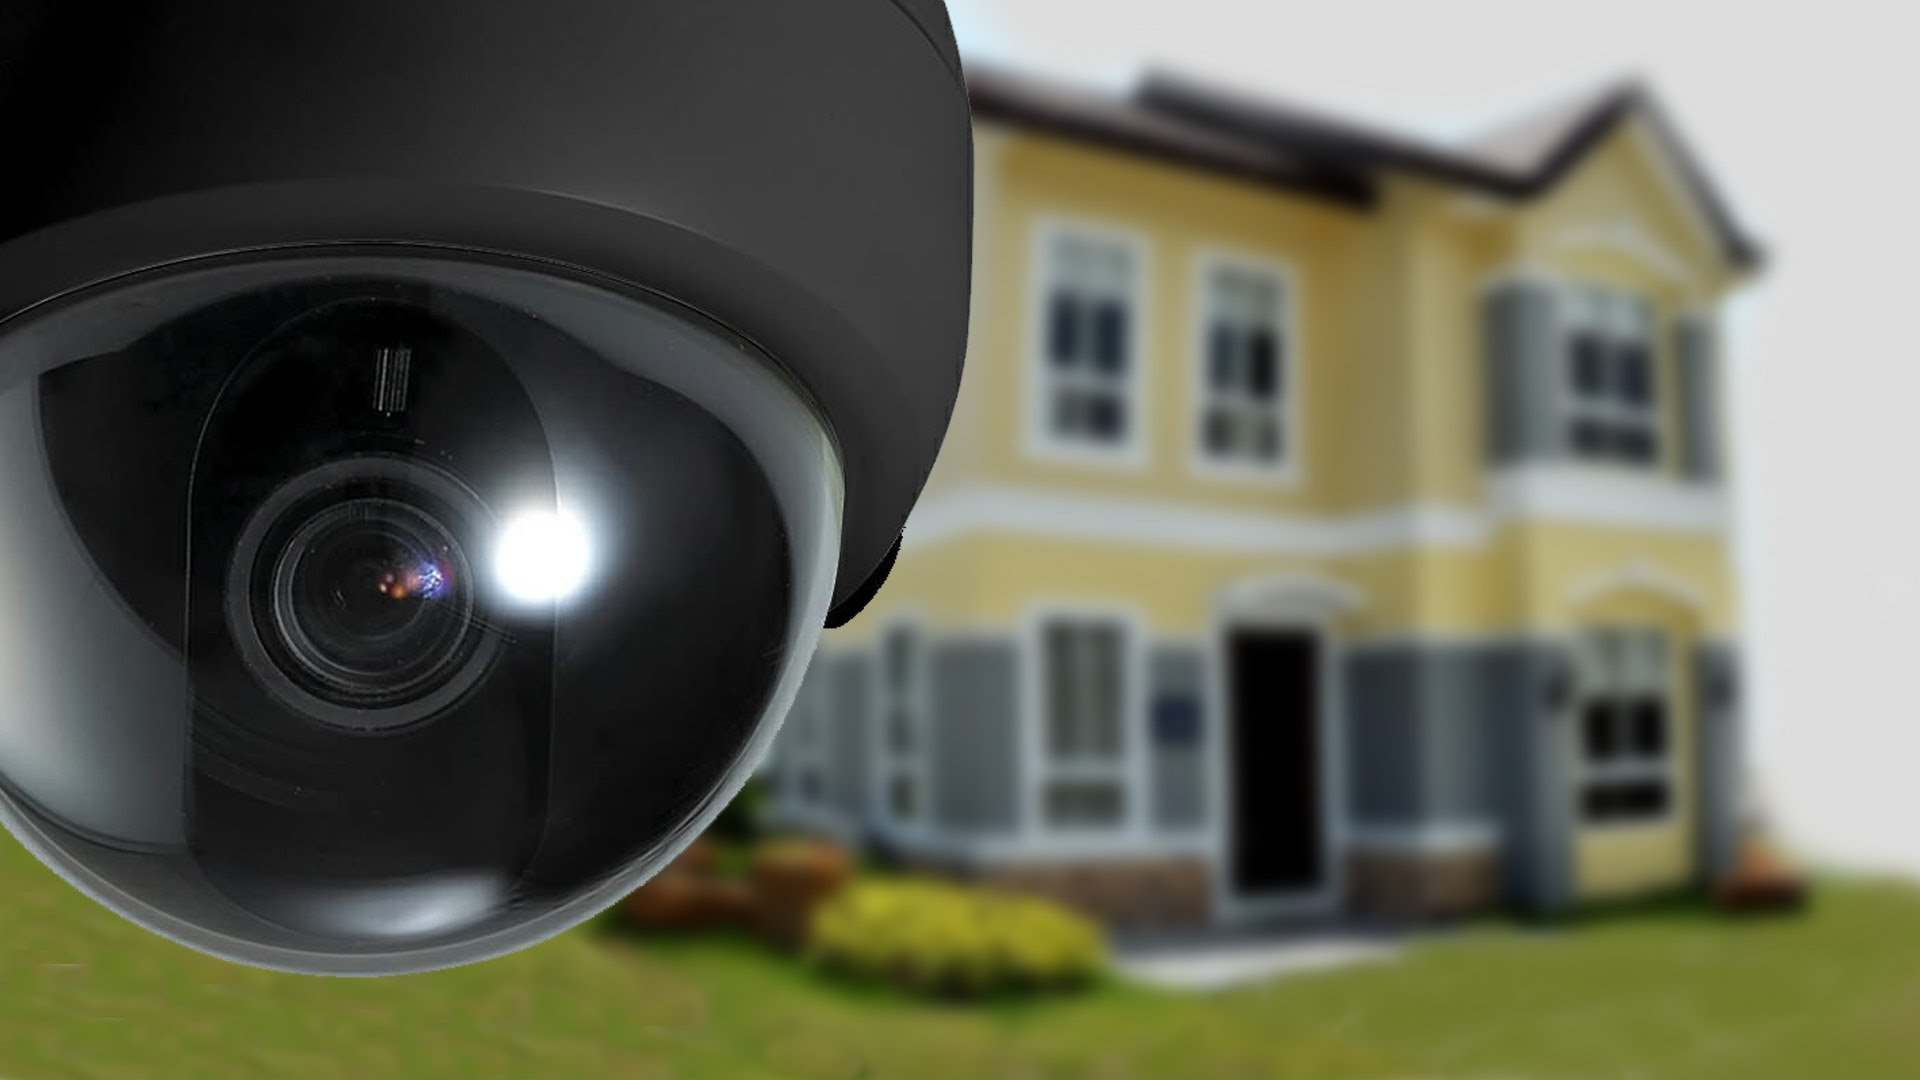 The Process: How Does The Security System Work?